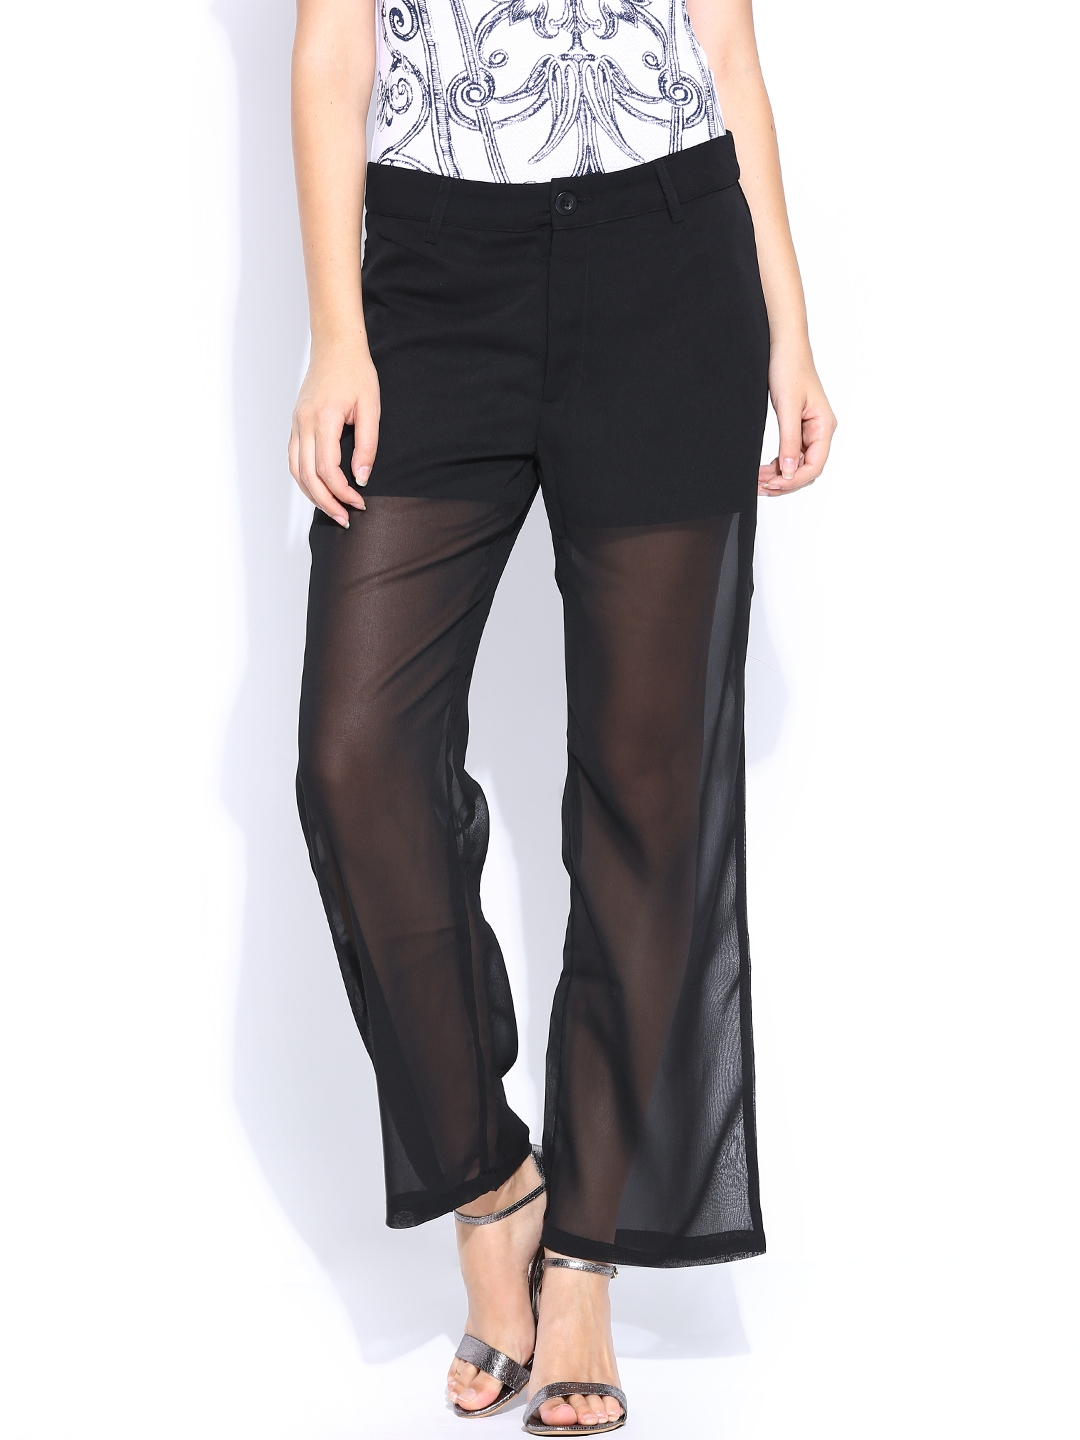 United Colors of Benetton Women Black Trousers